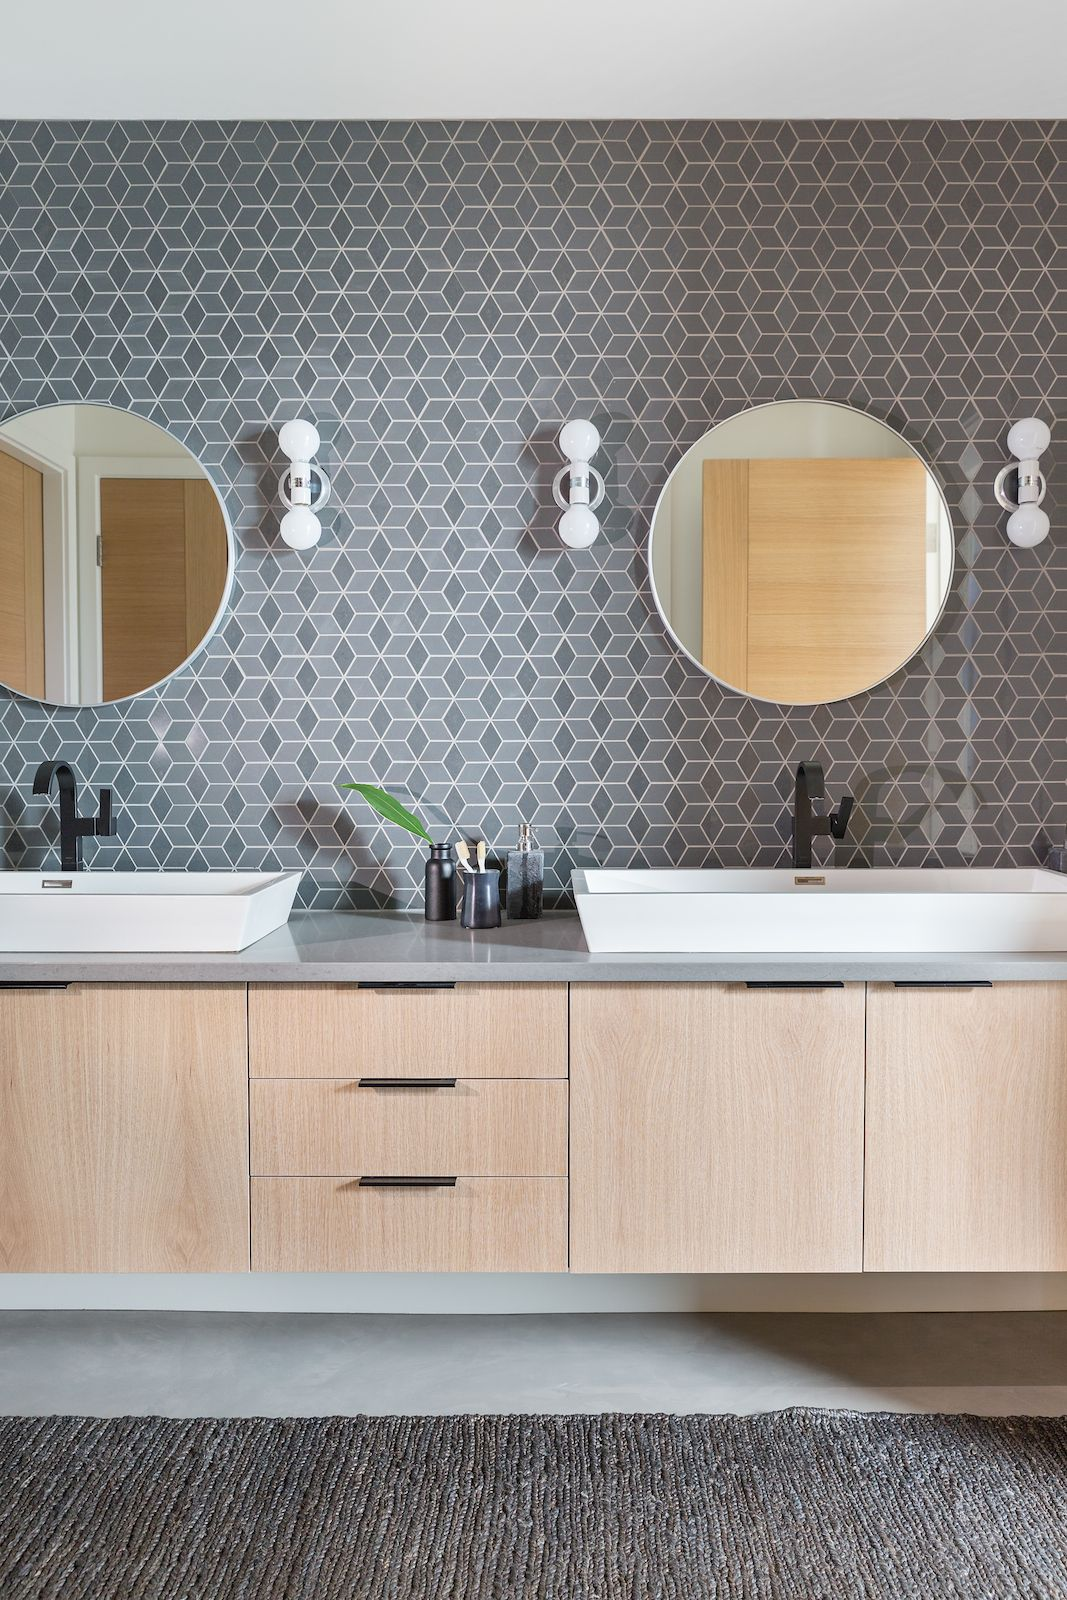 Project Reveal: Modern Boys Bathroom | Pinterest | Badezimmer ...